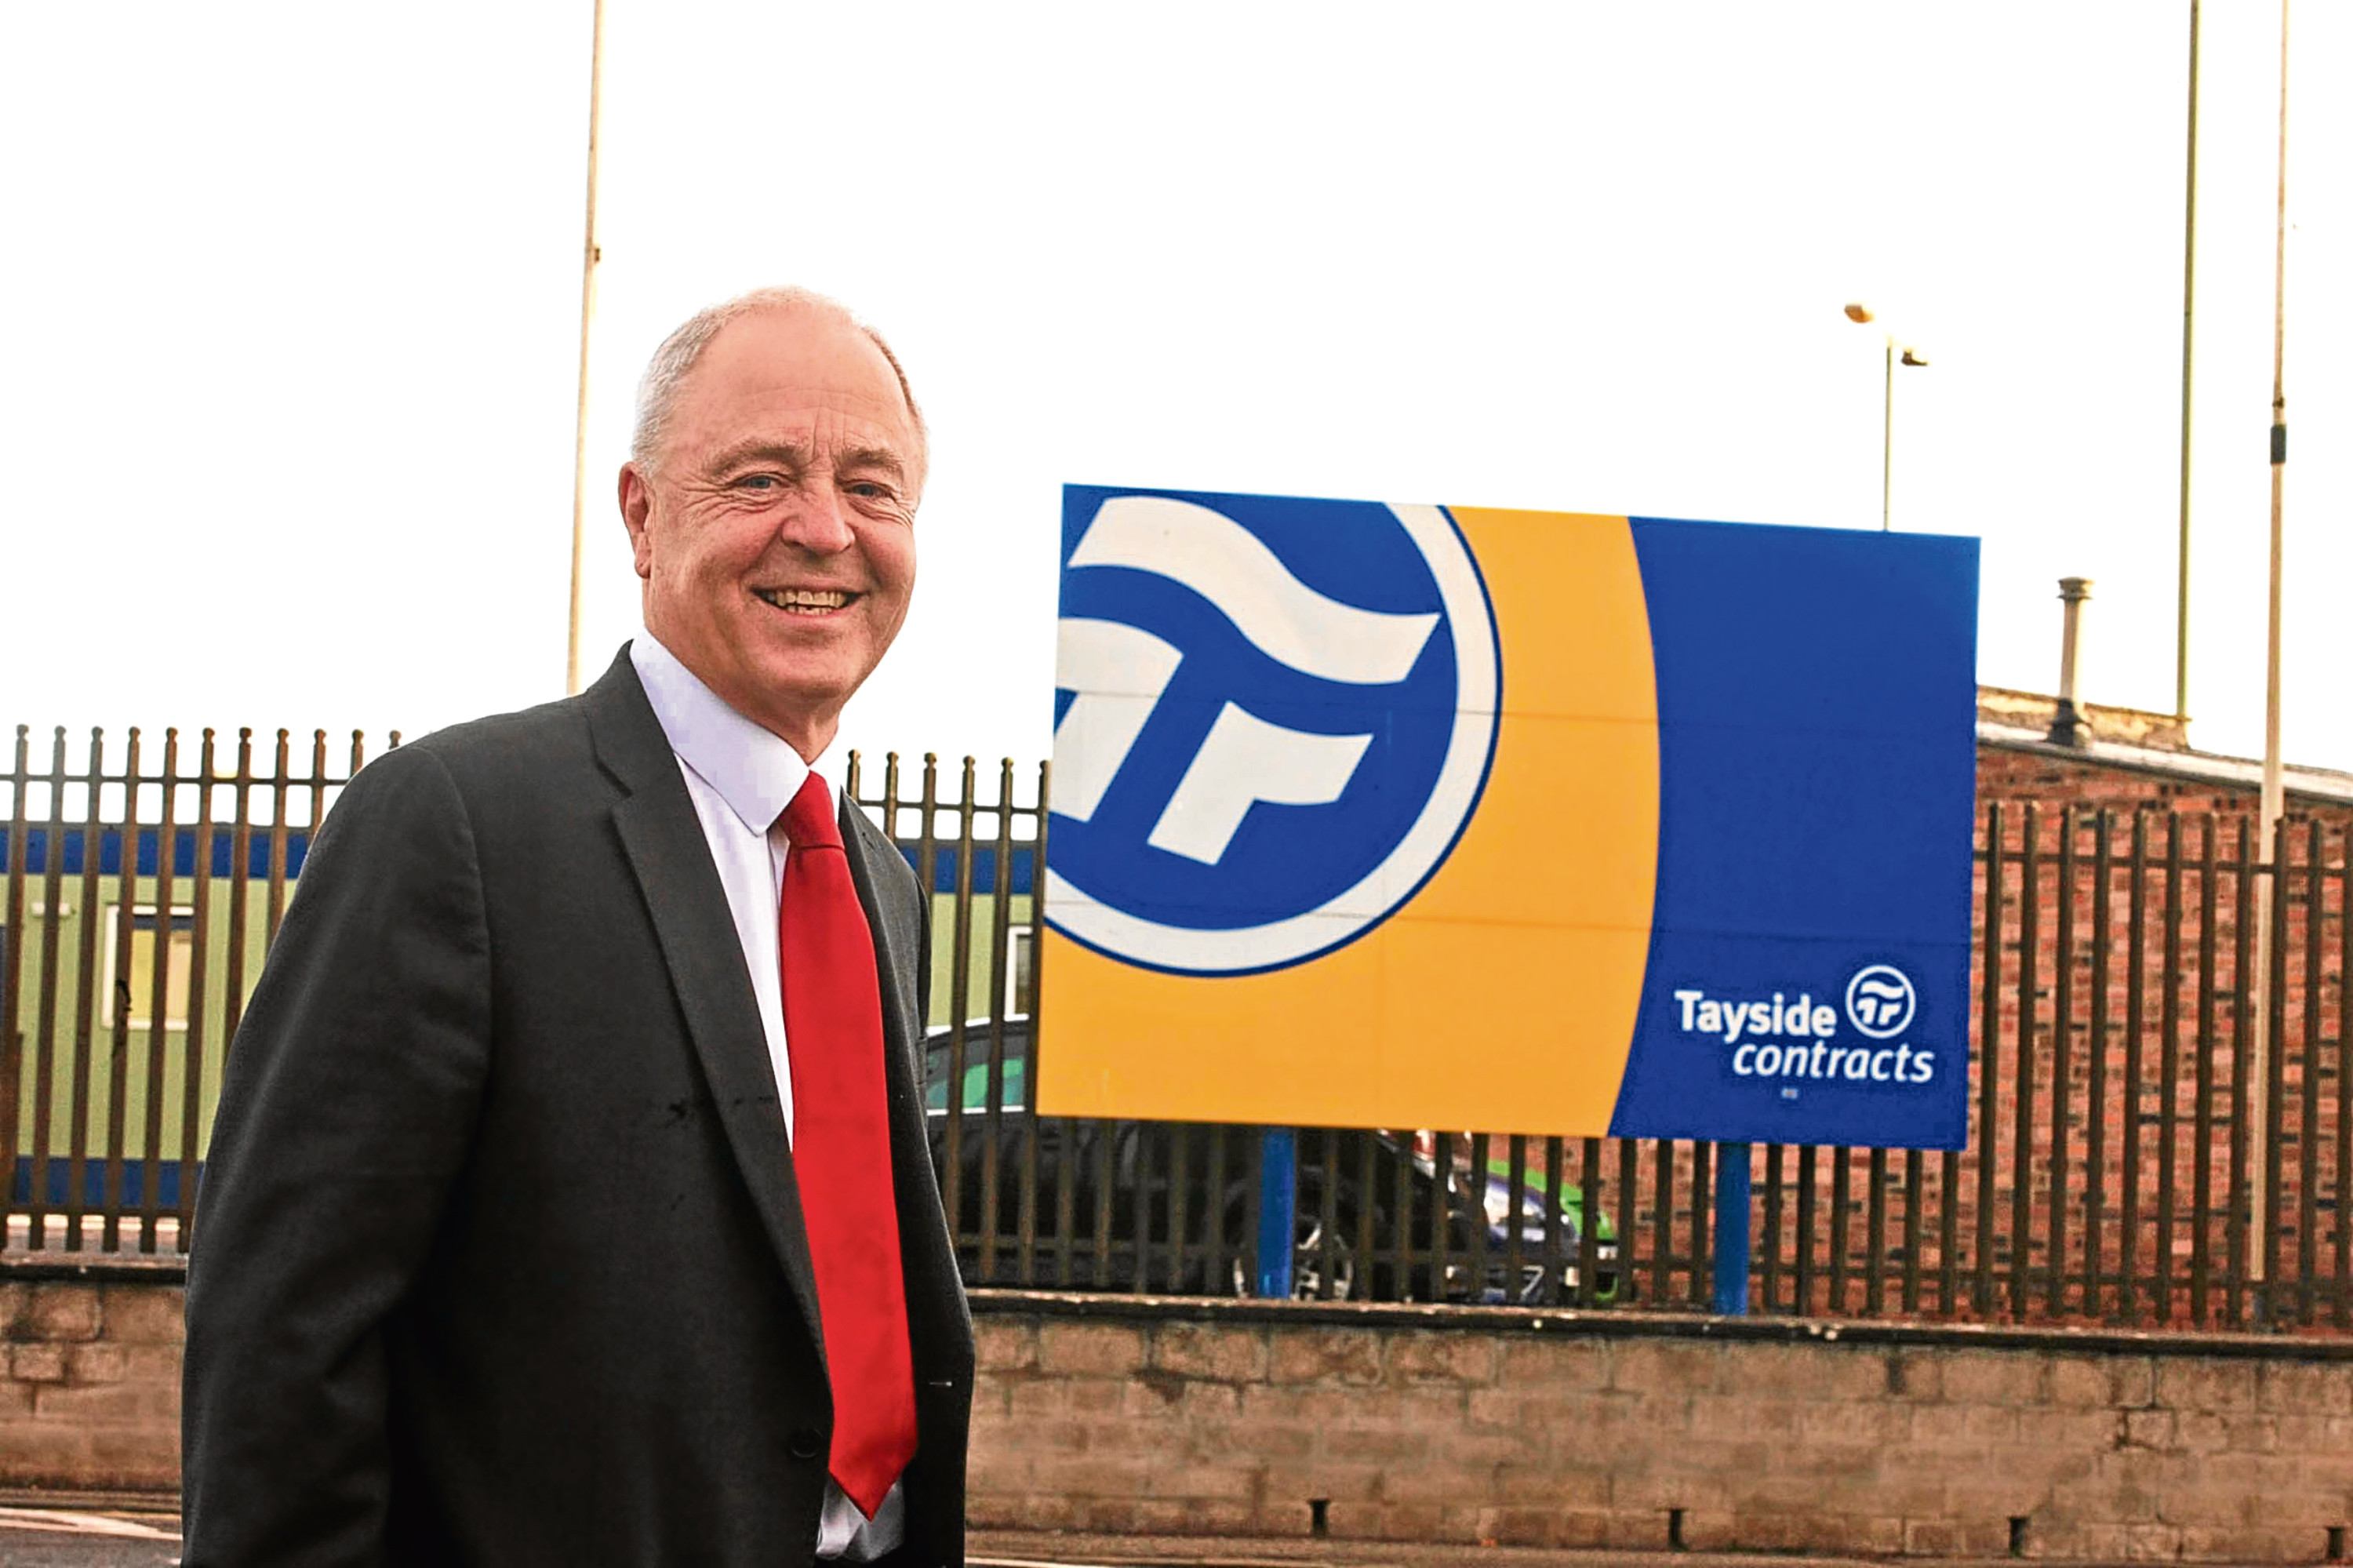 Iain Waddell, Tayside Contracts MD, has confirmed some staff will be furloughed.